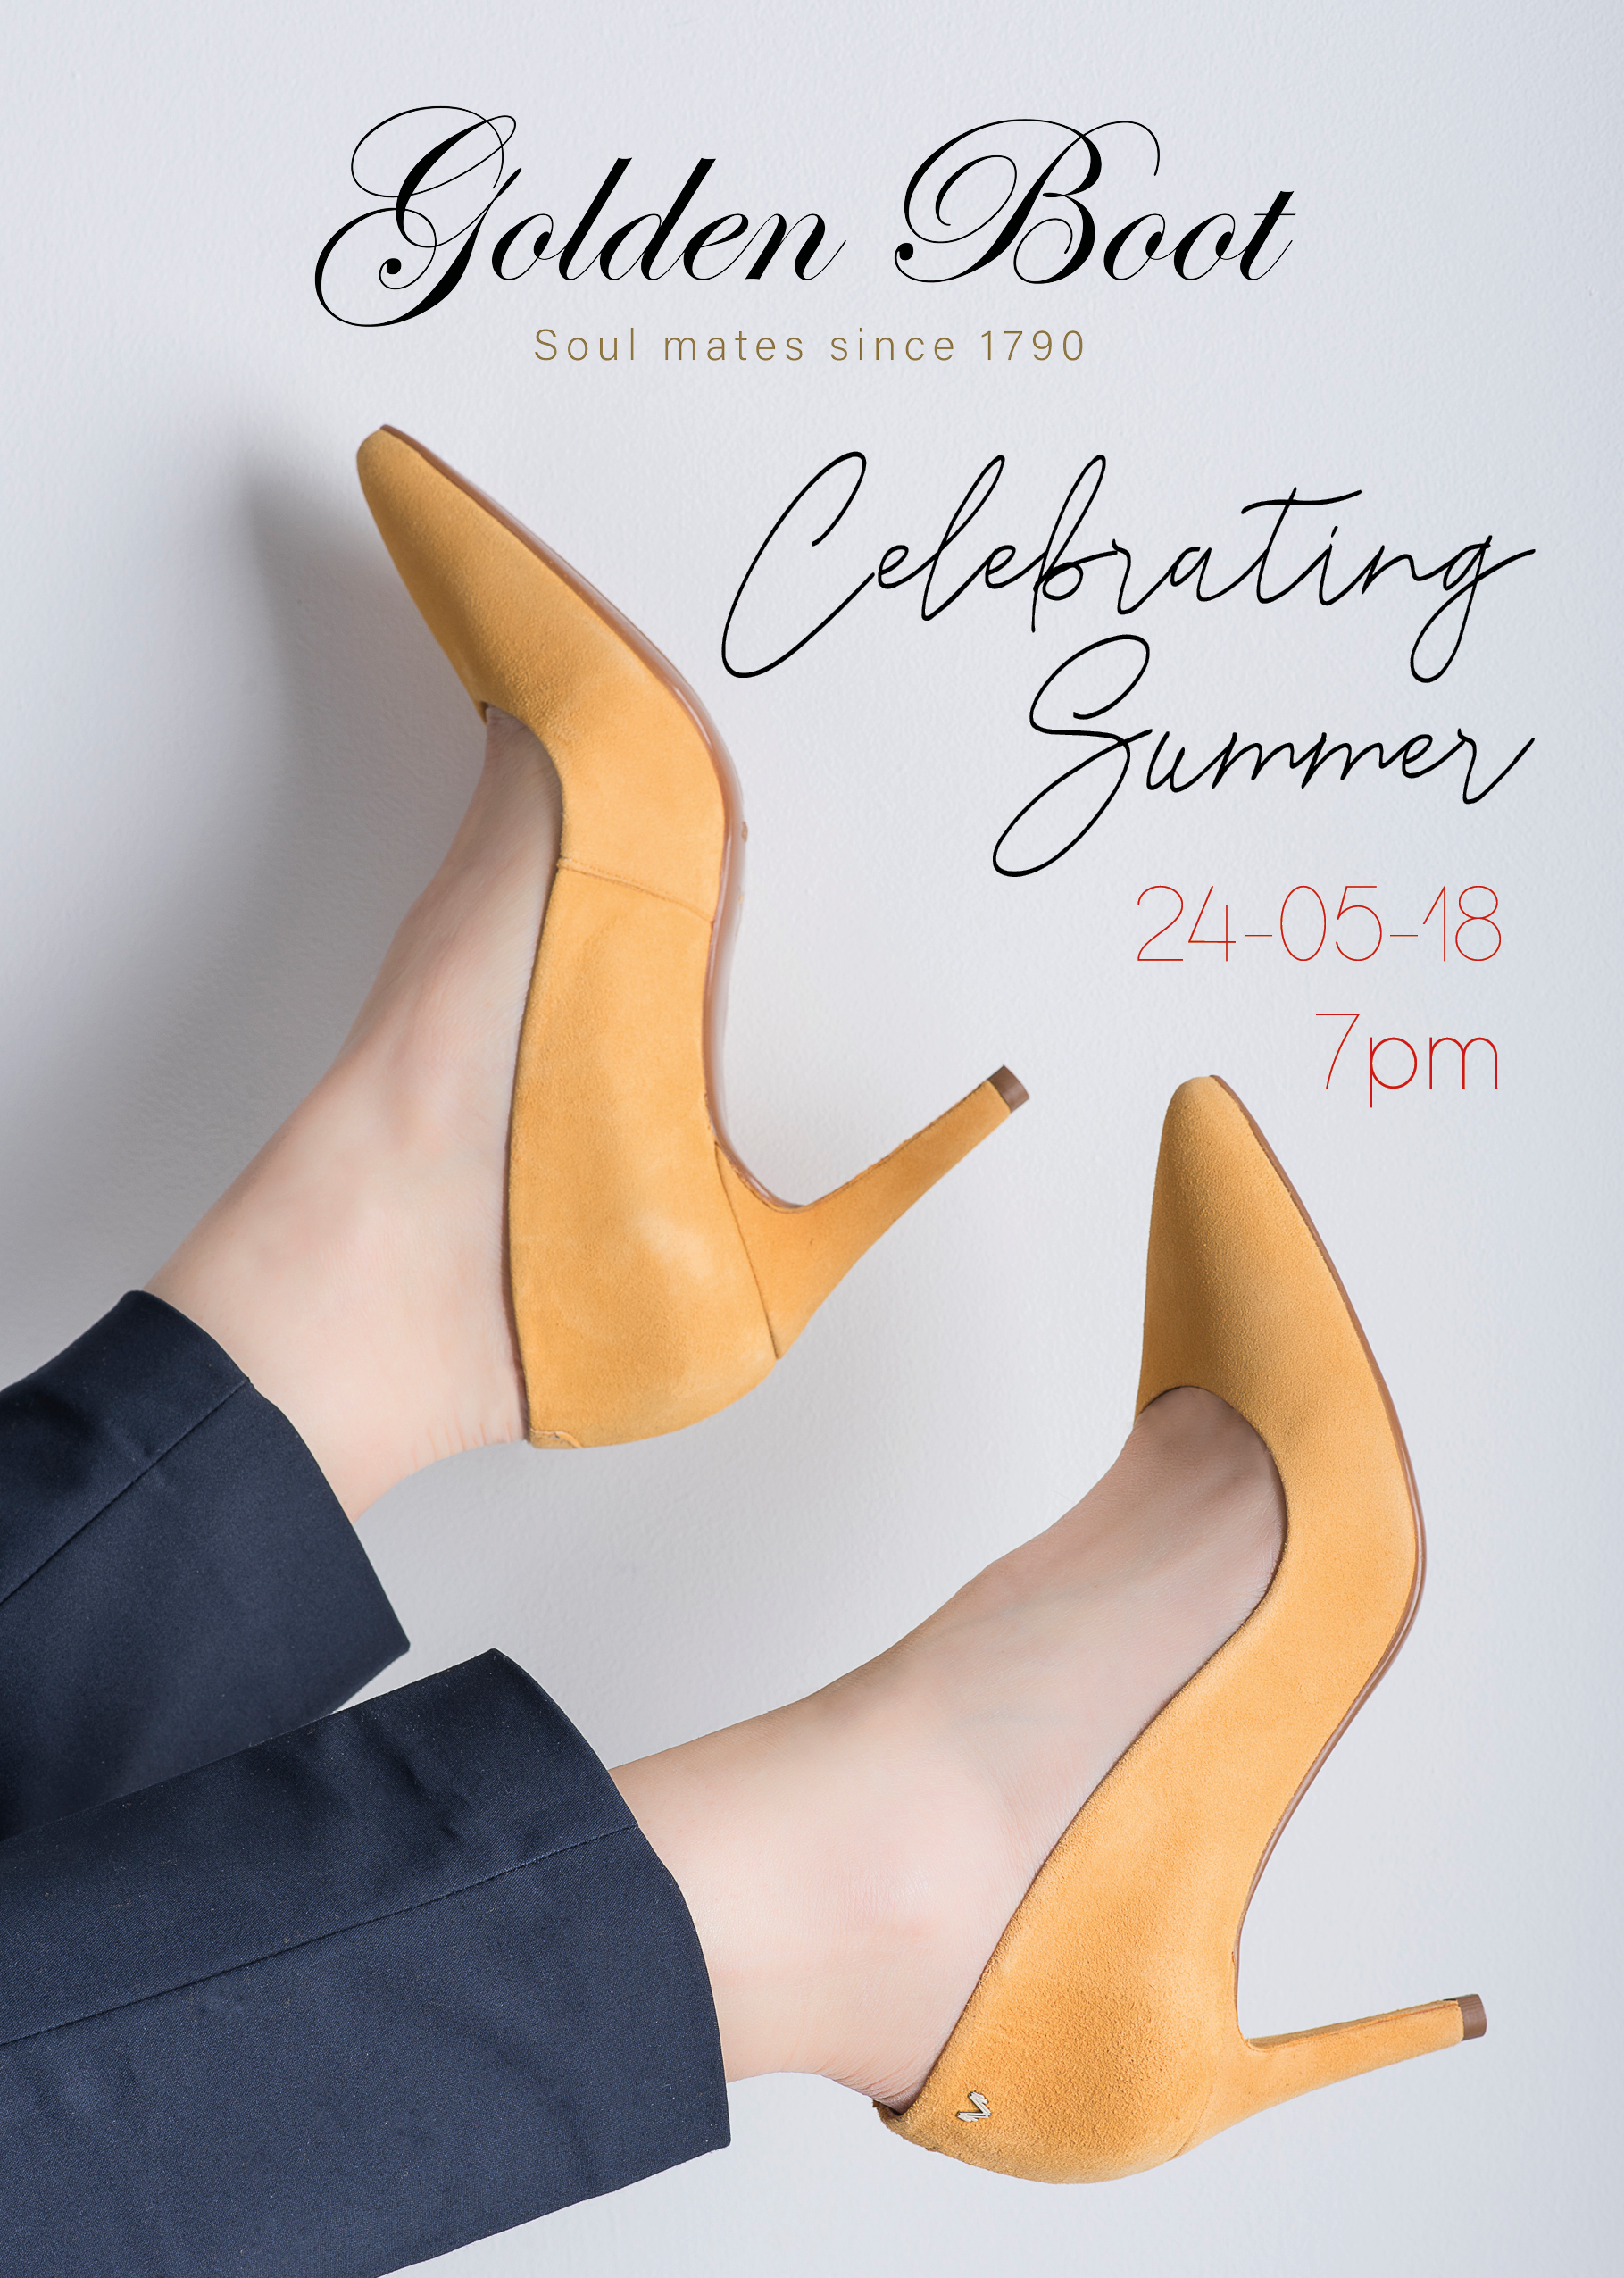 Celebrating Summer – Golden Boot Ladies' evening 2018